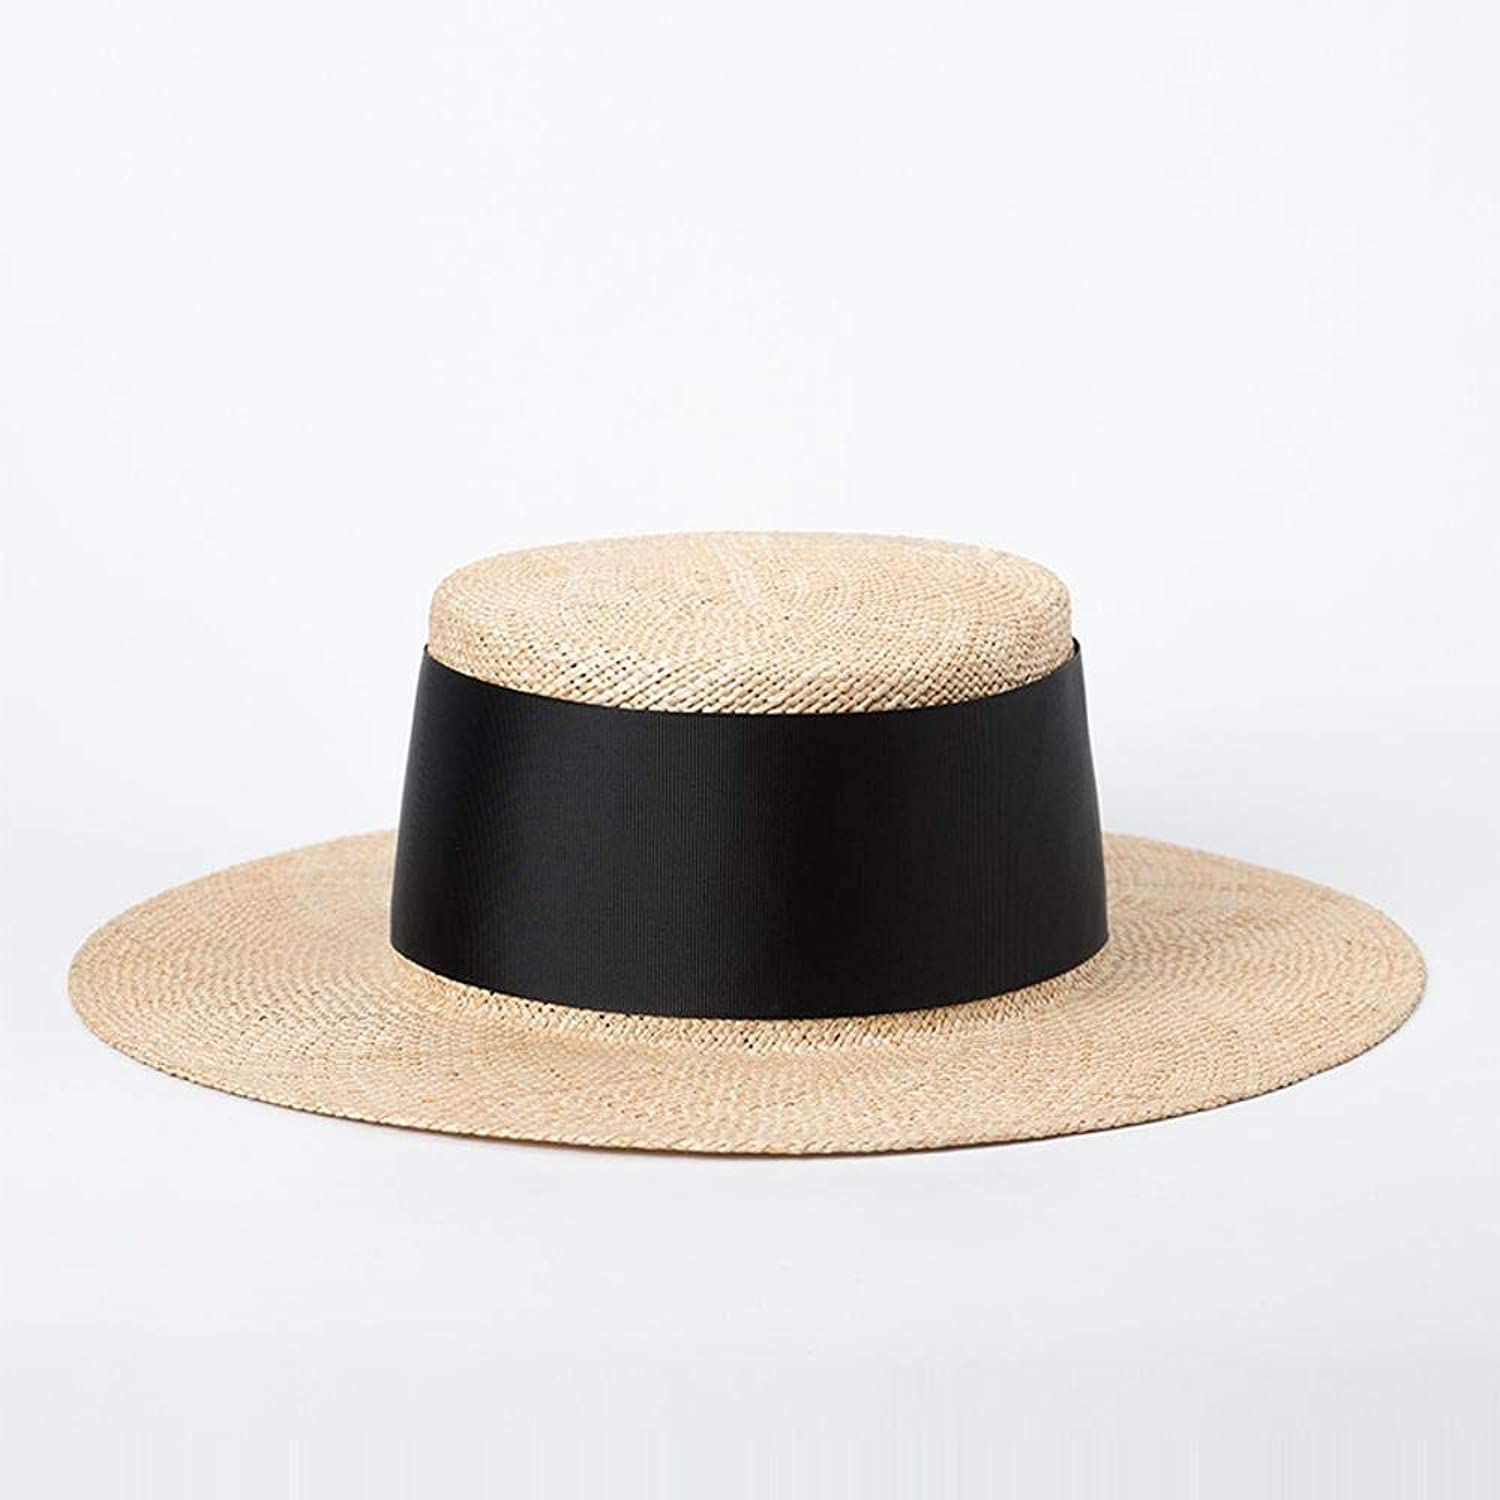 TtKj Straw hat Wide Ribbon Decorative FlatTopped po Grass hat Summer Outdoor Travel SunTopped Straw hat